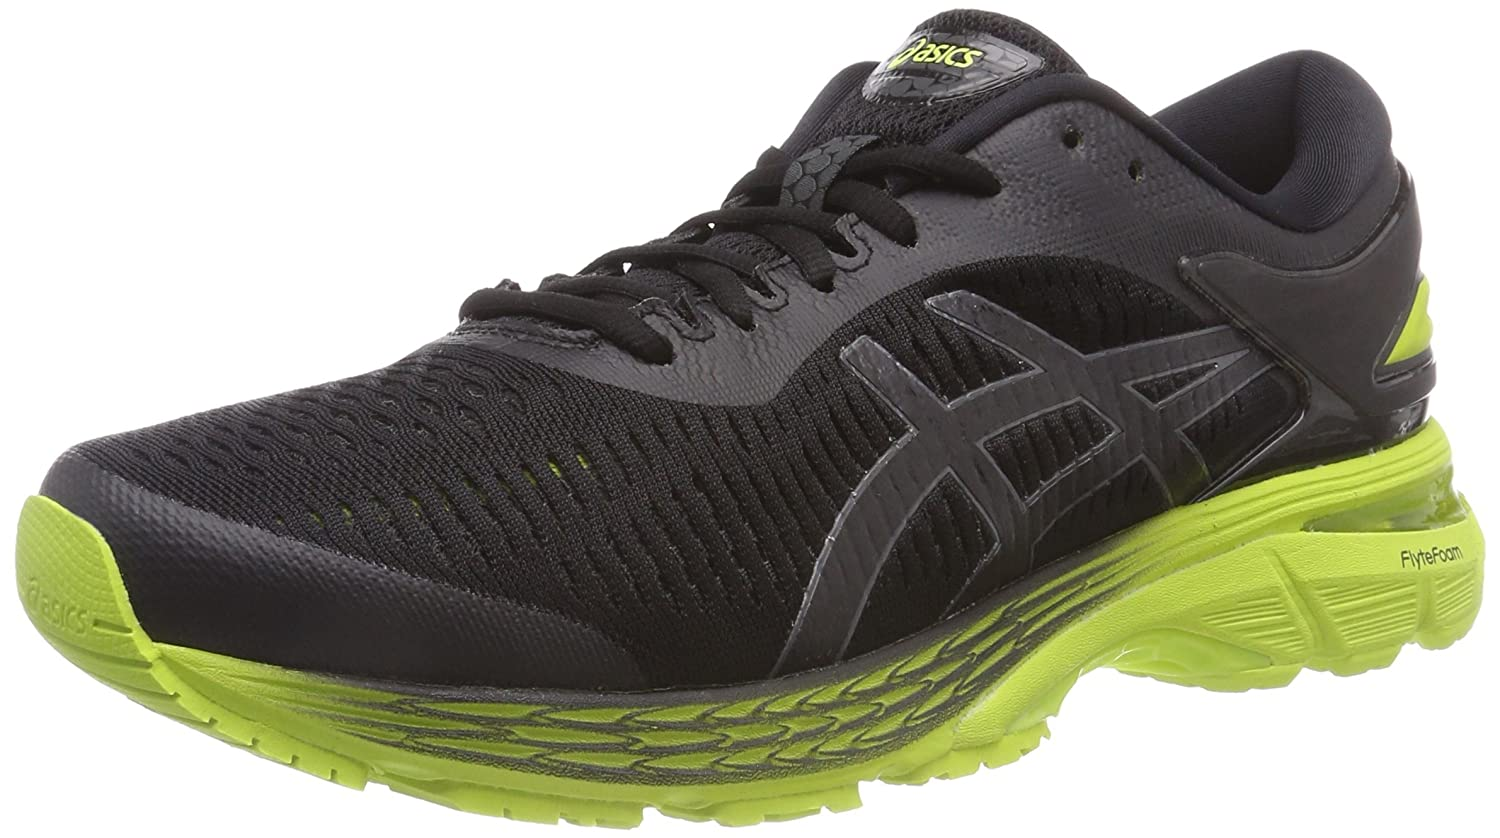 974e27d471a5 ASICS Men s Gel-Kayano 25 Running Shoes  Buy Online at Low Prices in India  - Amazon.in